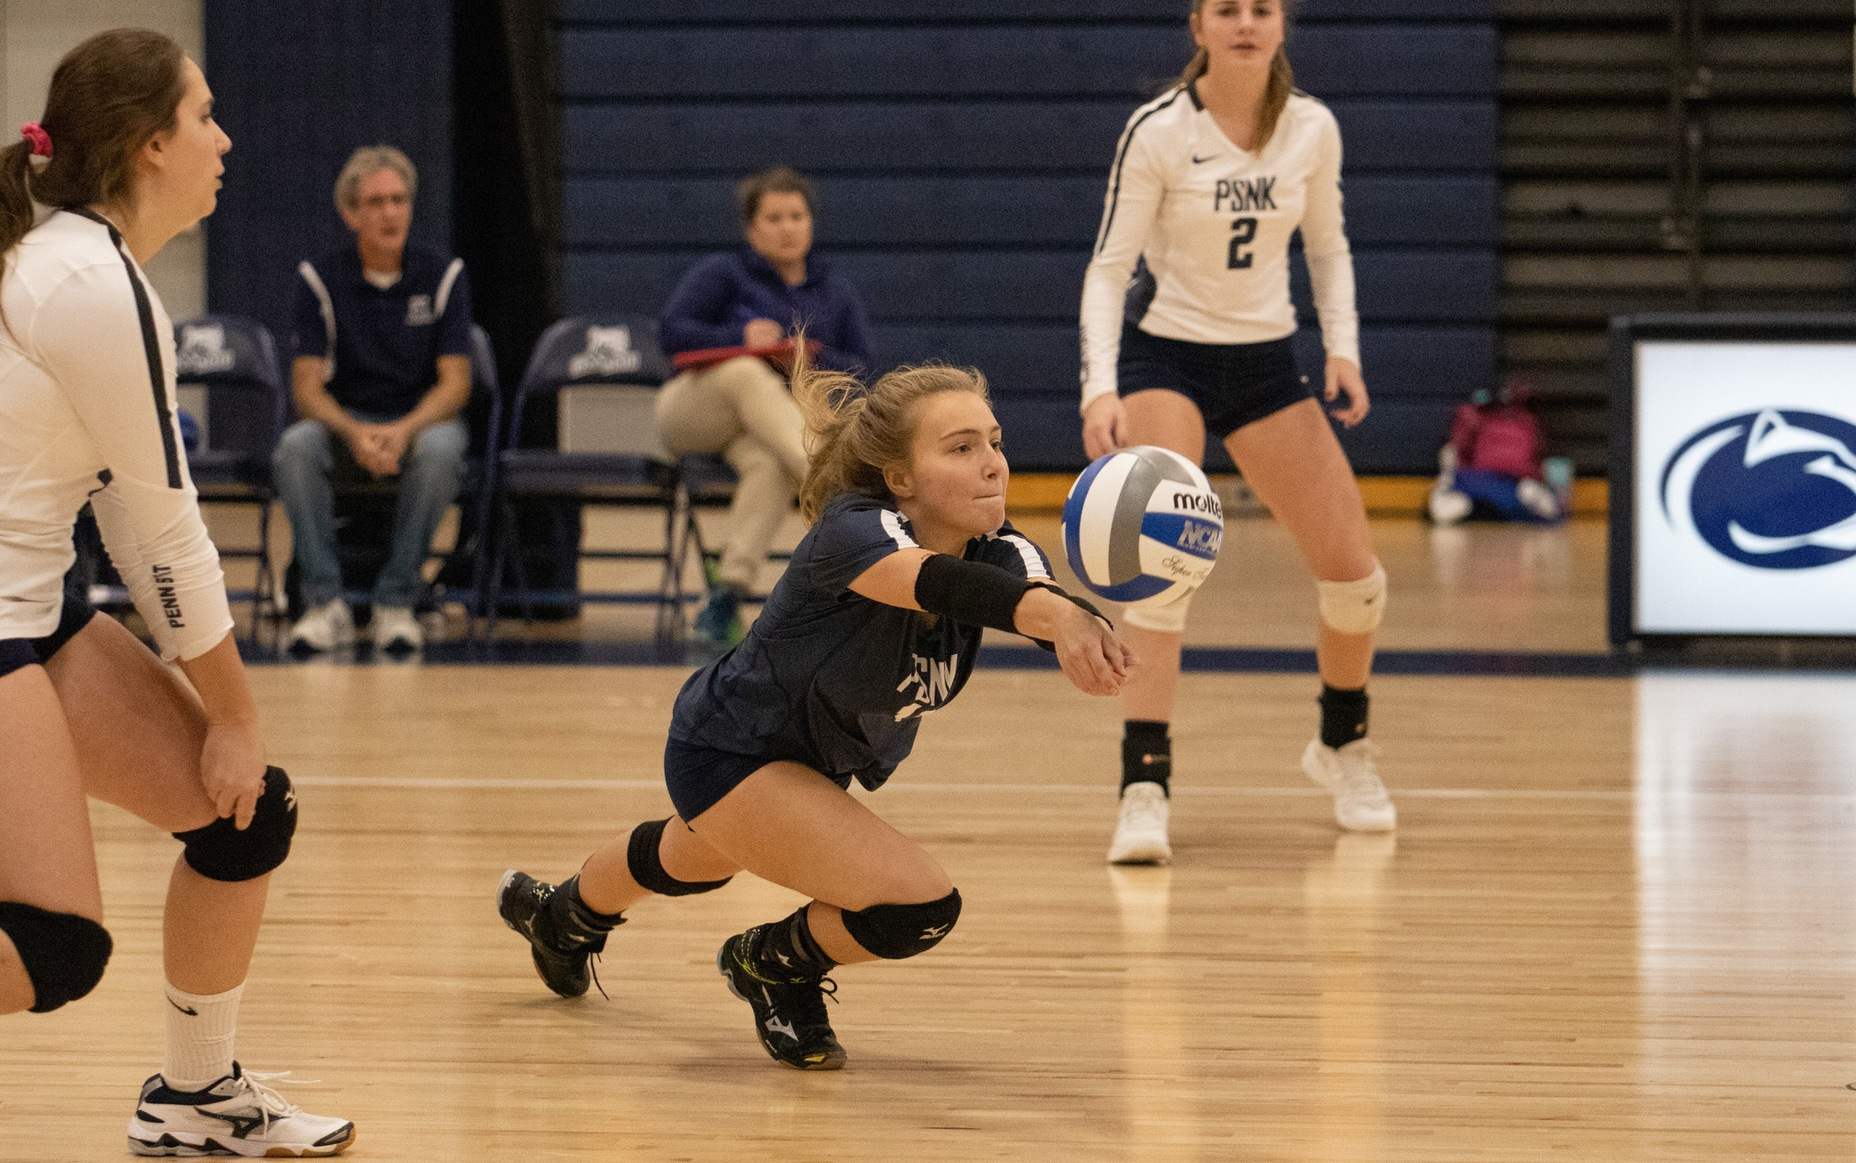 New Kensington falls to first-place PSU Fayette